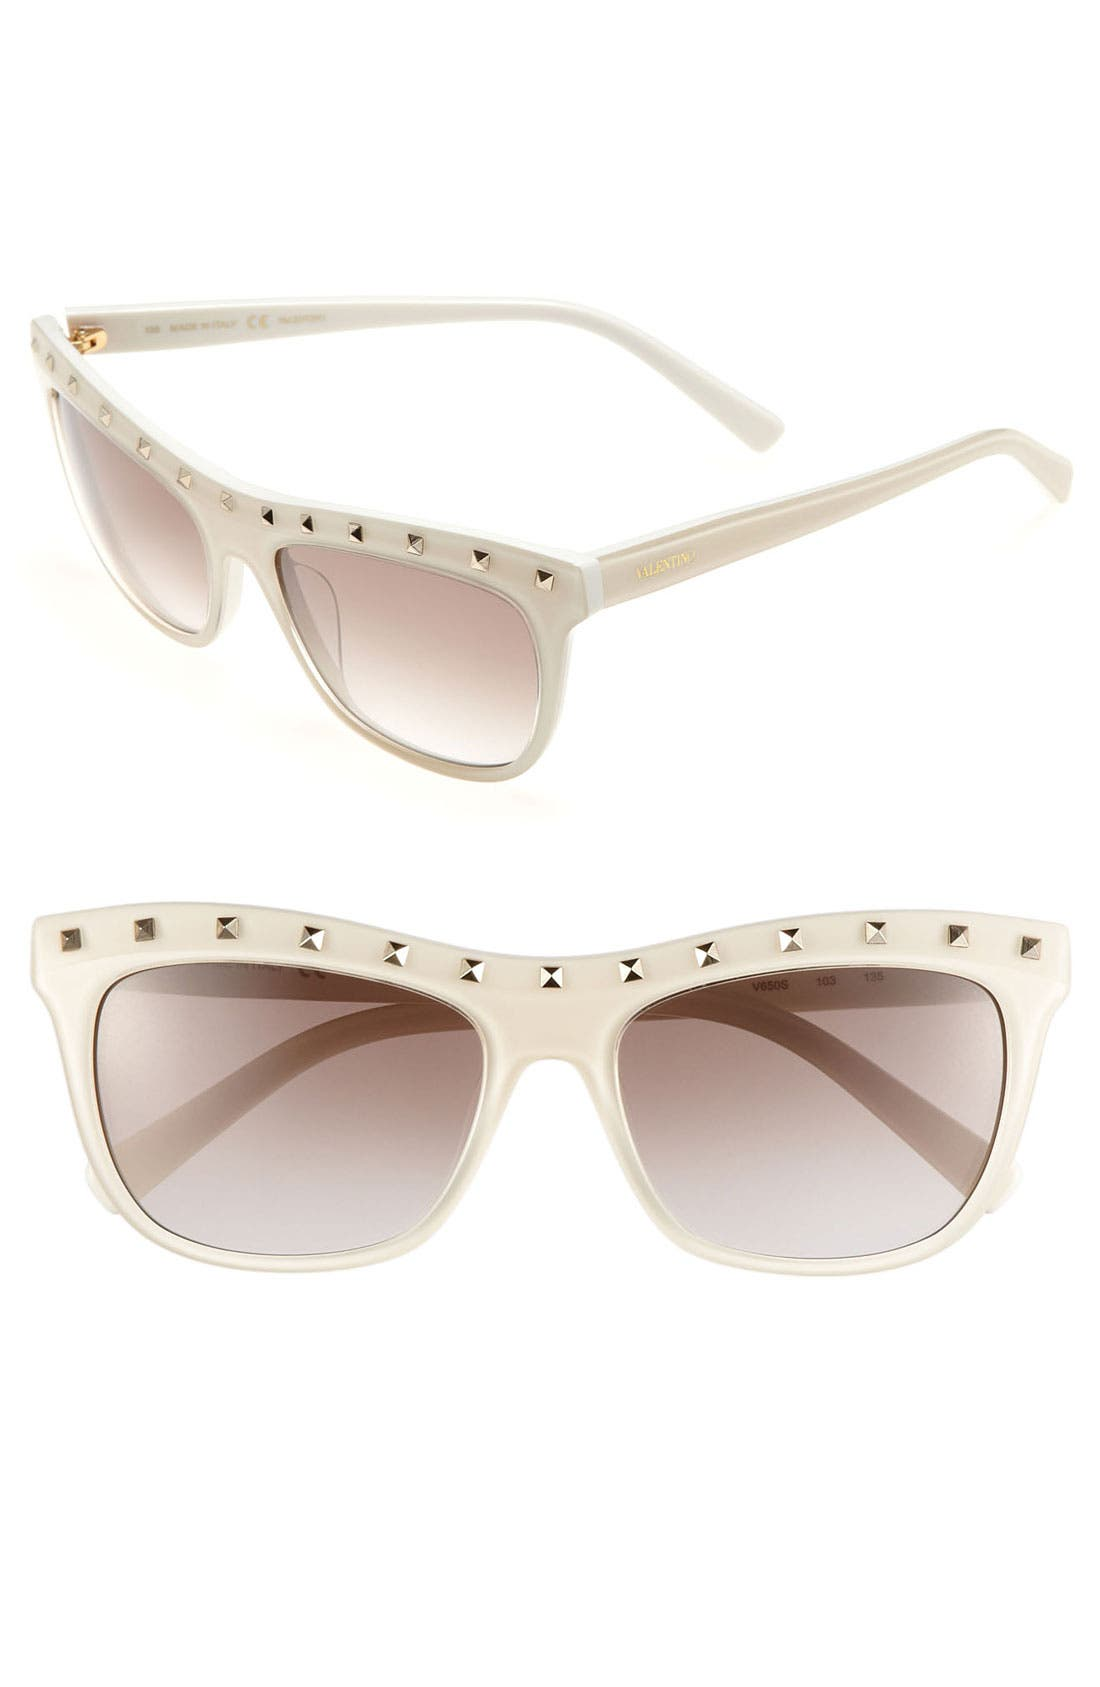 Alternate Image 1 Selected - Valentino 'Rockstud' 54mm Sunglasses